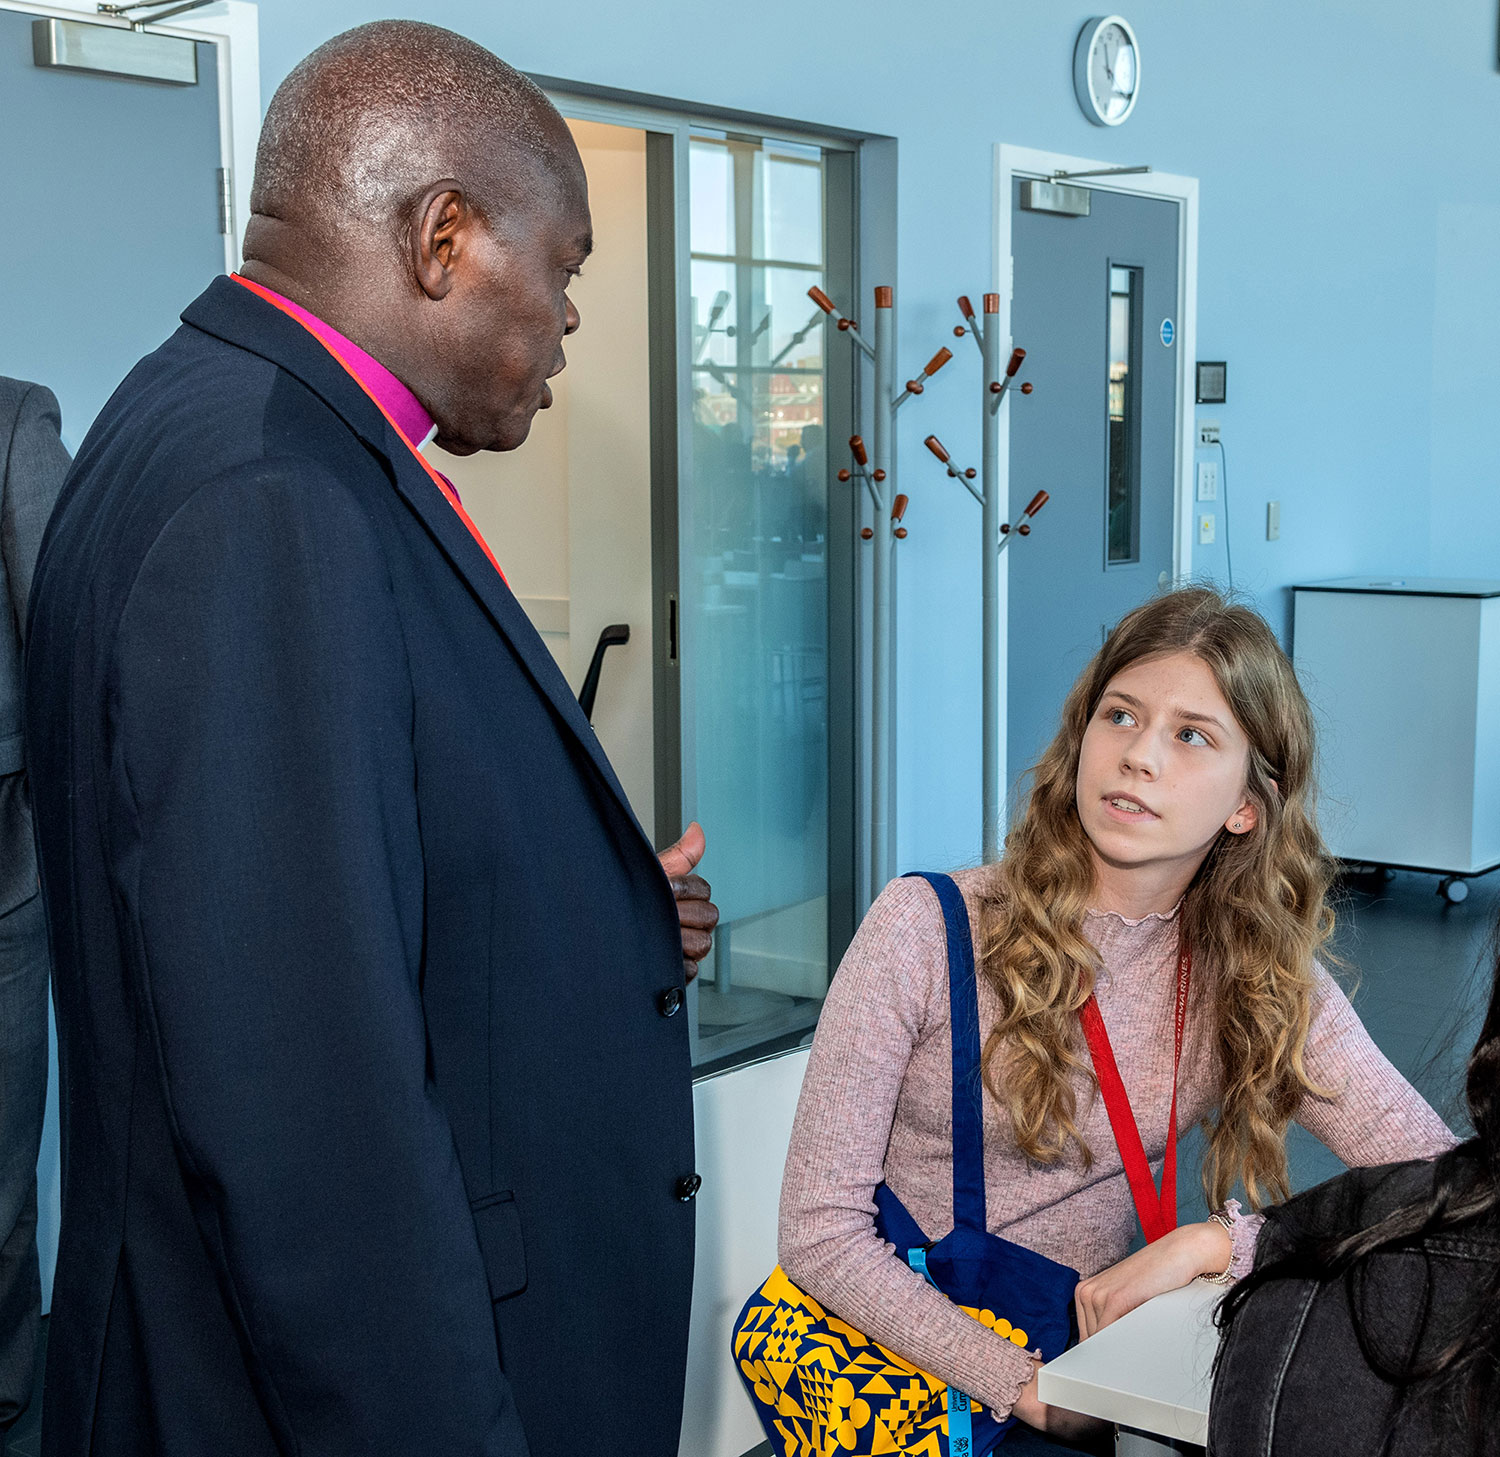 Abbie talking with the Archbishop of York John Sentamu